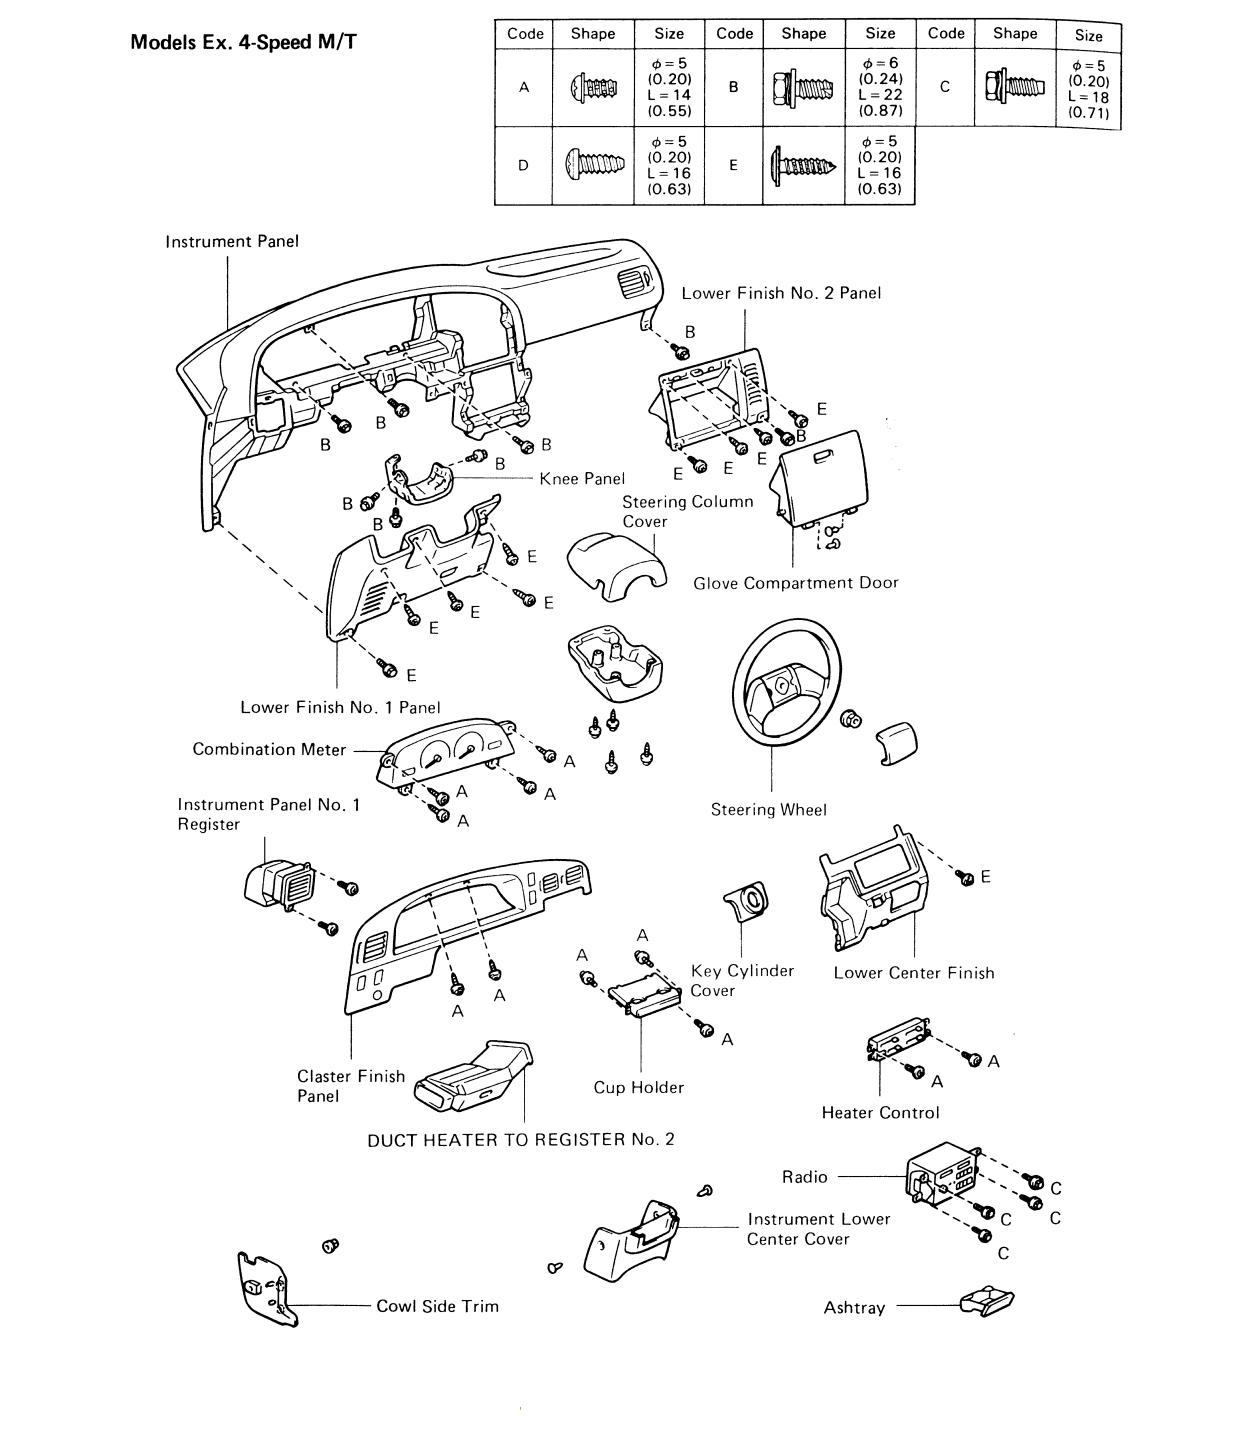 where can you find the 4 wheel drive vacuum schematic for